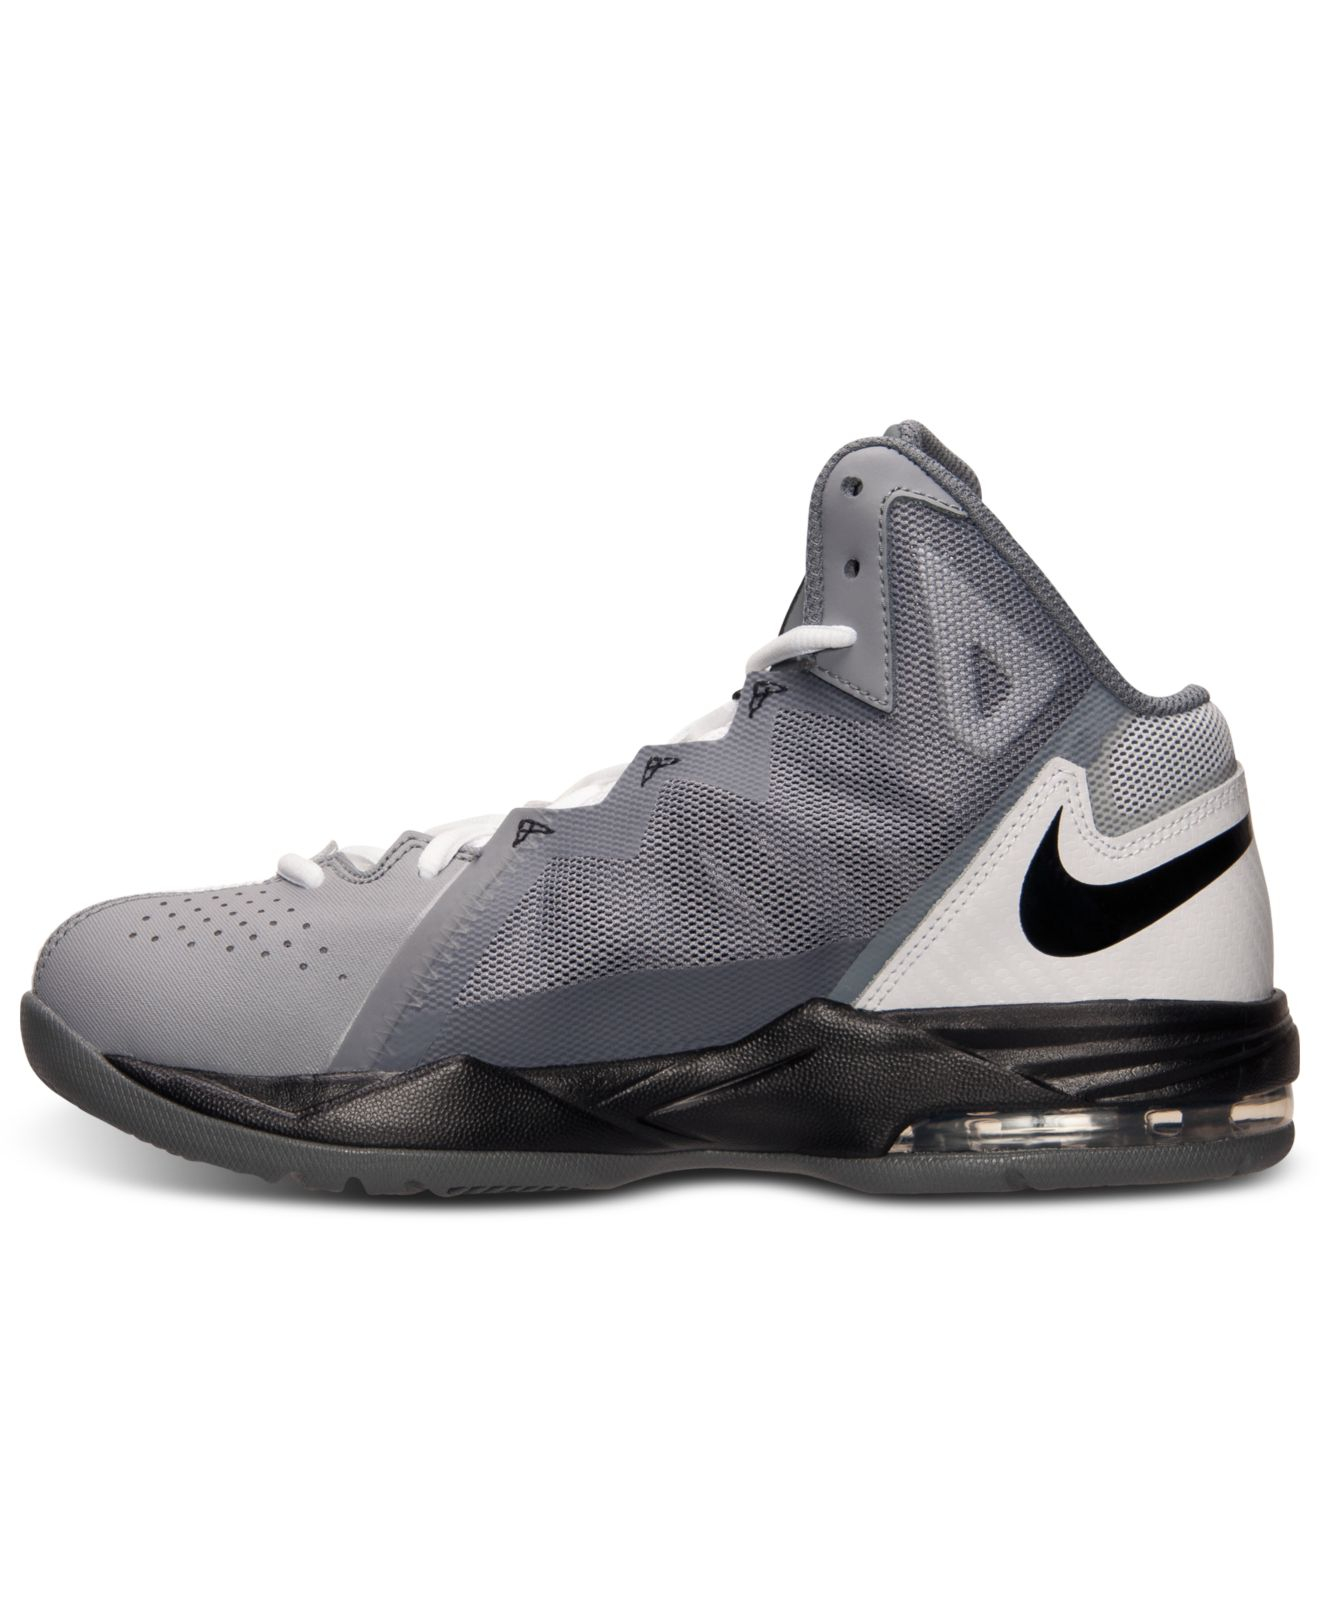 nike s air max stutter step 2 basketball sneakers from